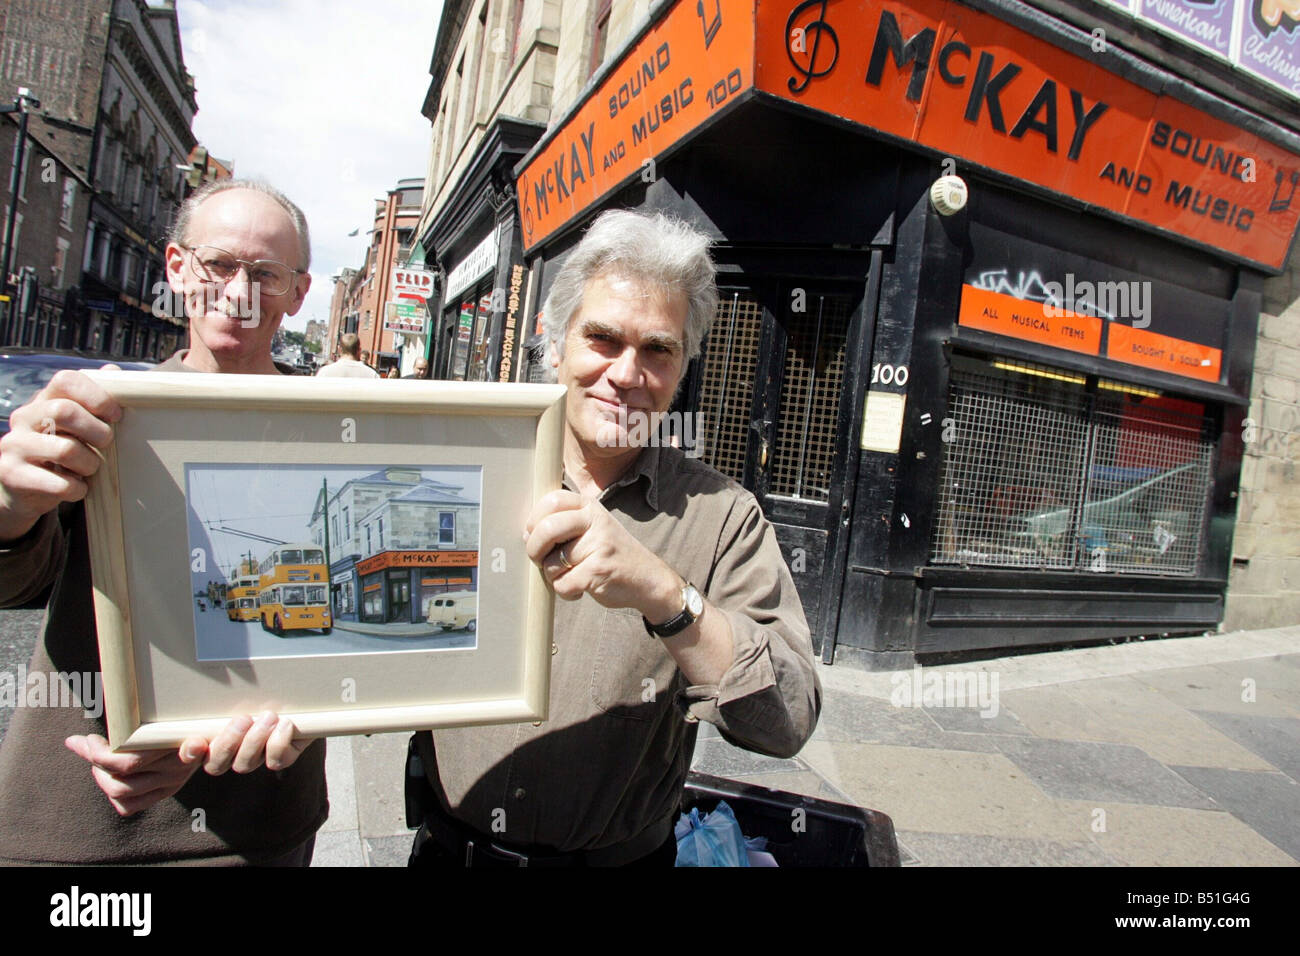 Lindisfarne band member Ray Jackson right presents a painting called Wired for Sound of MaKay sound and music shop - Stock Image